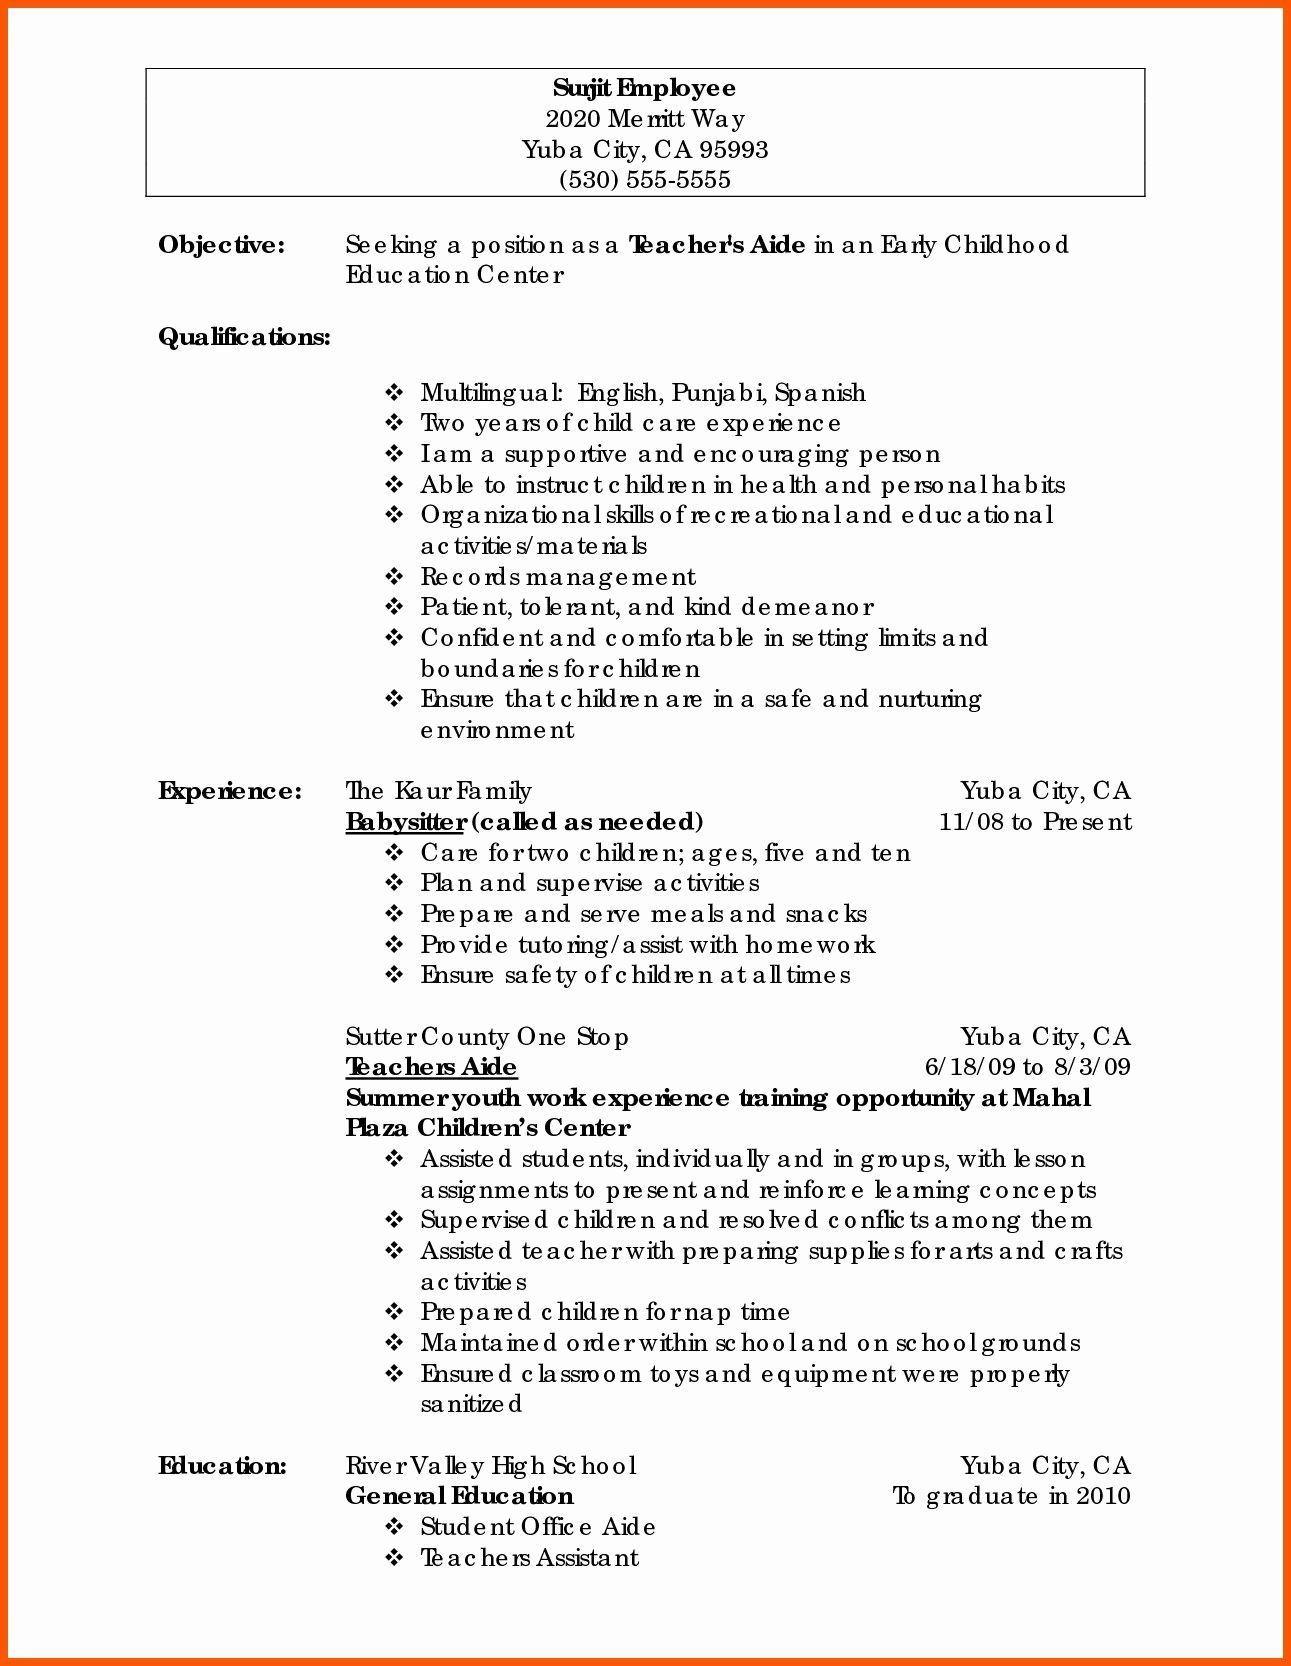 Personal Statement Template Easy Sample Personal Statement for Resume A Good Resume New New